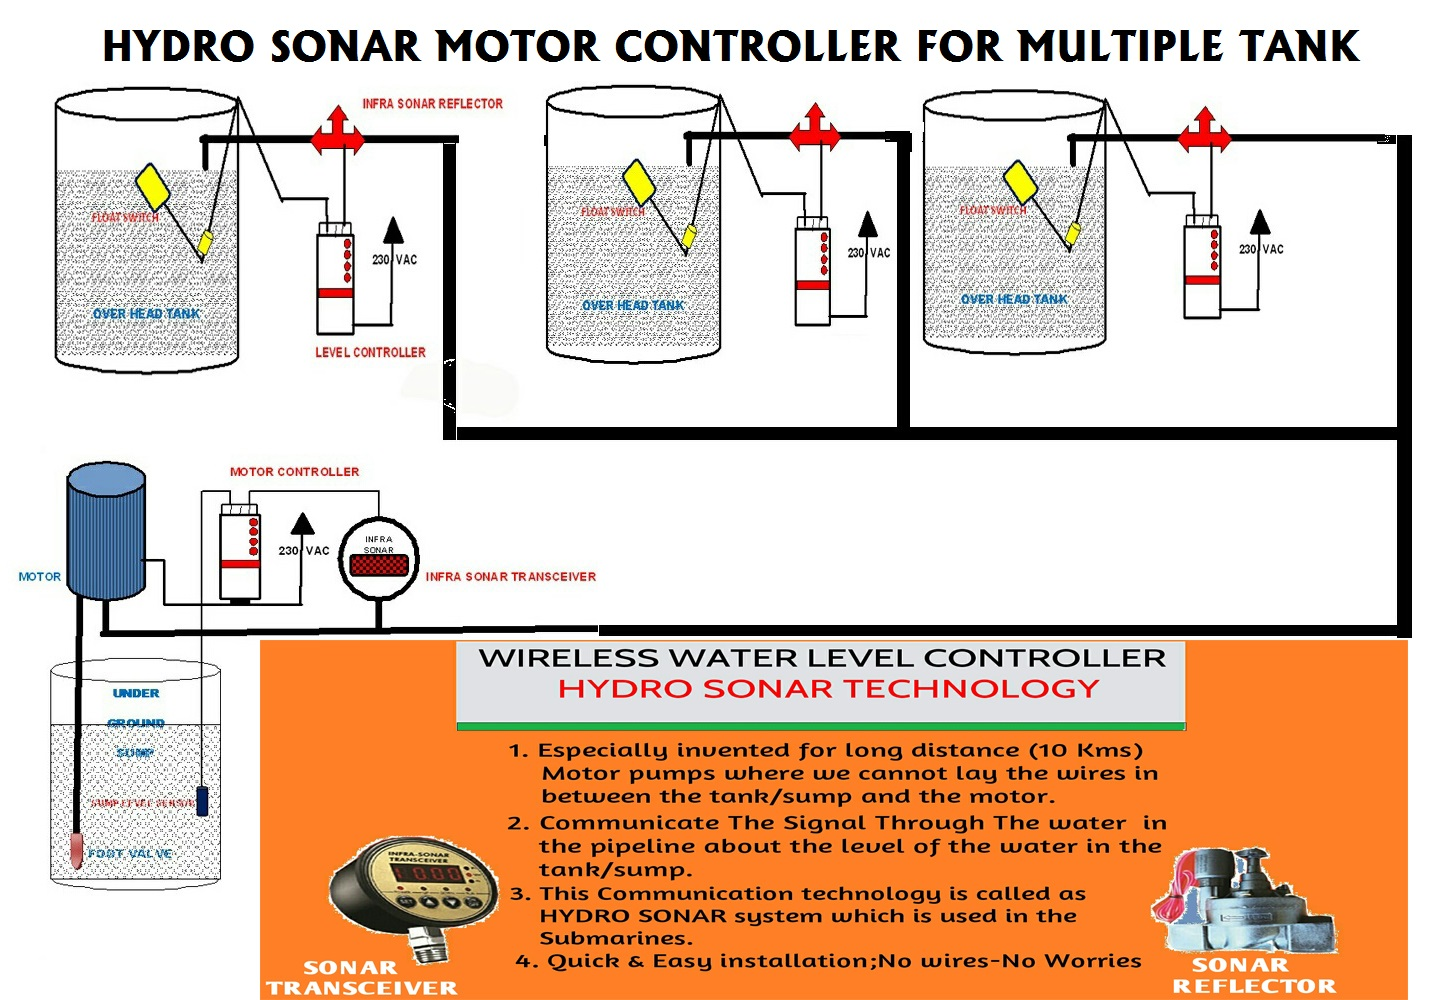 Ajlon Technologies Products Sonar Wiring Diagrams Quick And Easy Installation No Wires Worries